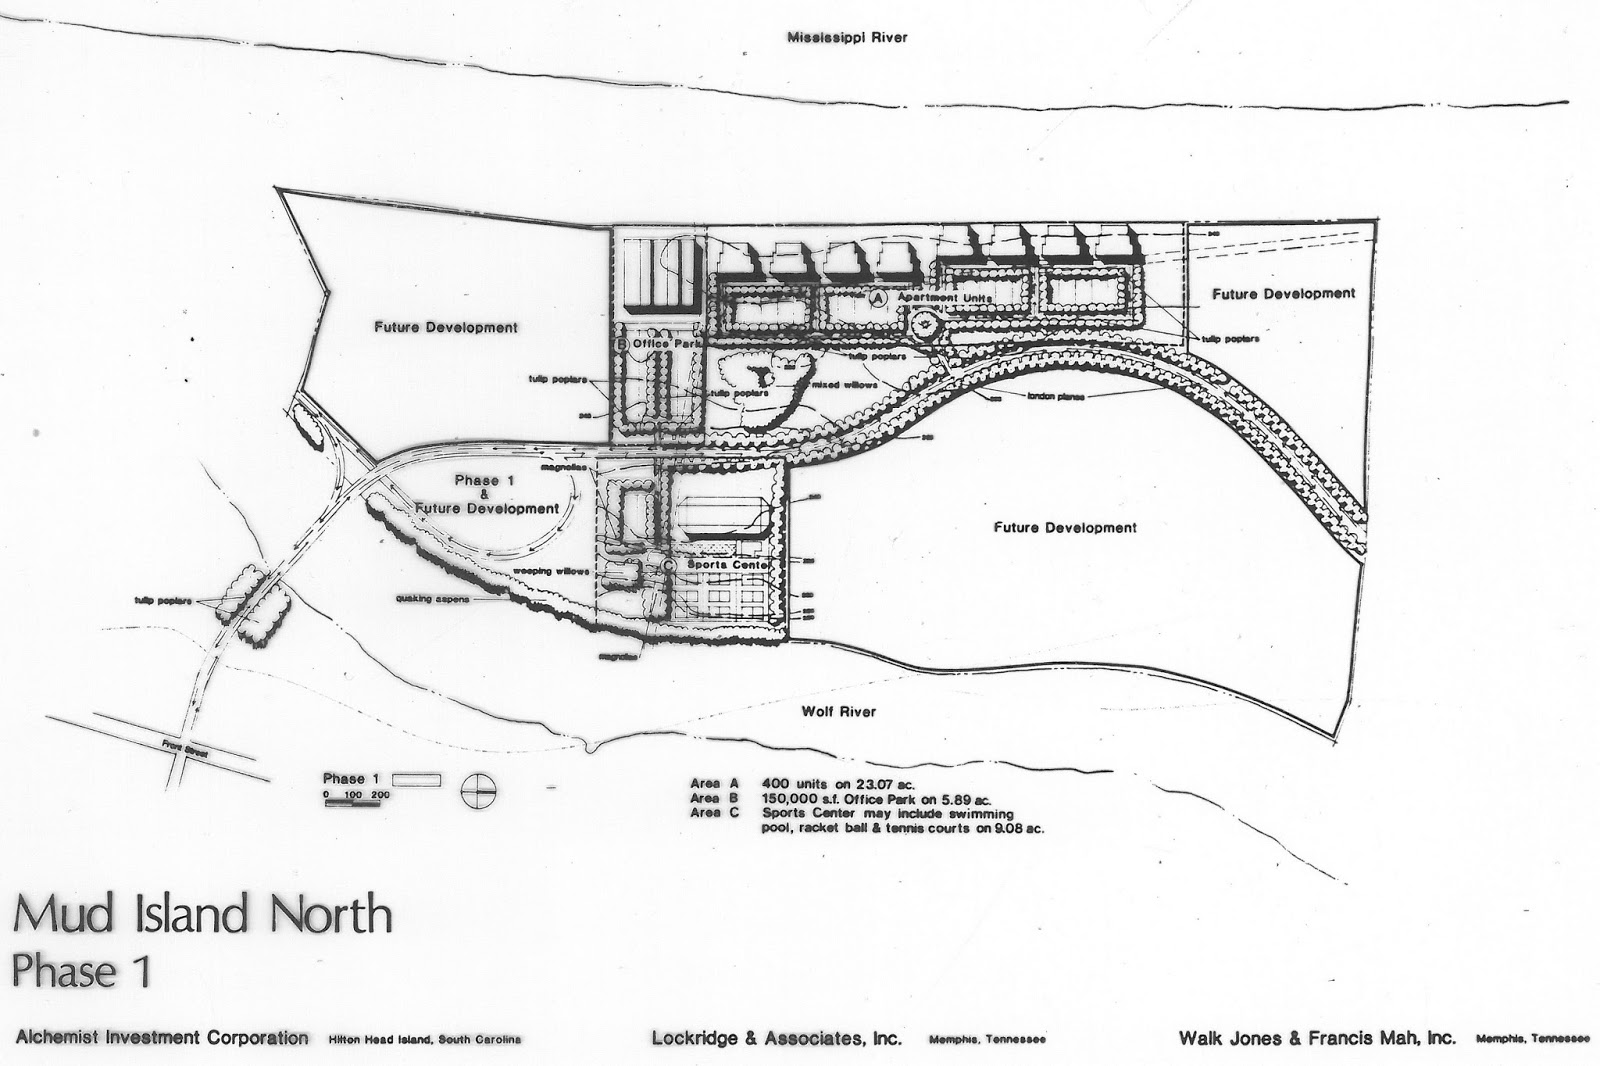 in 1982 the same year the mud island park opened at the south end of the island this proposal was presented to the memphis and shelby county land use